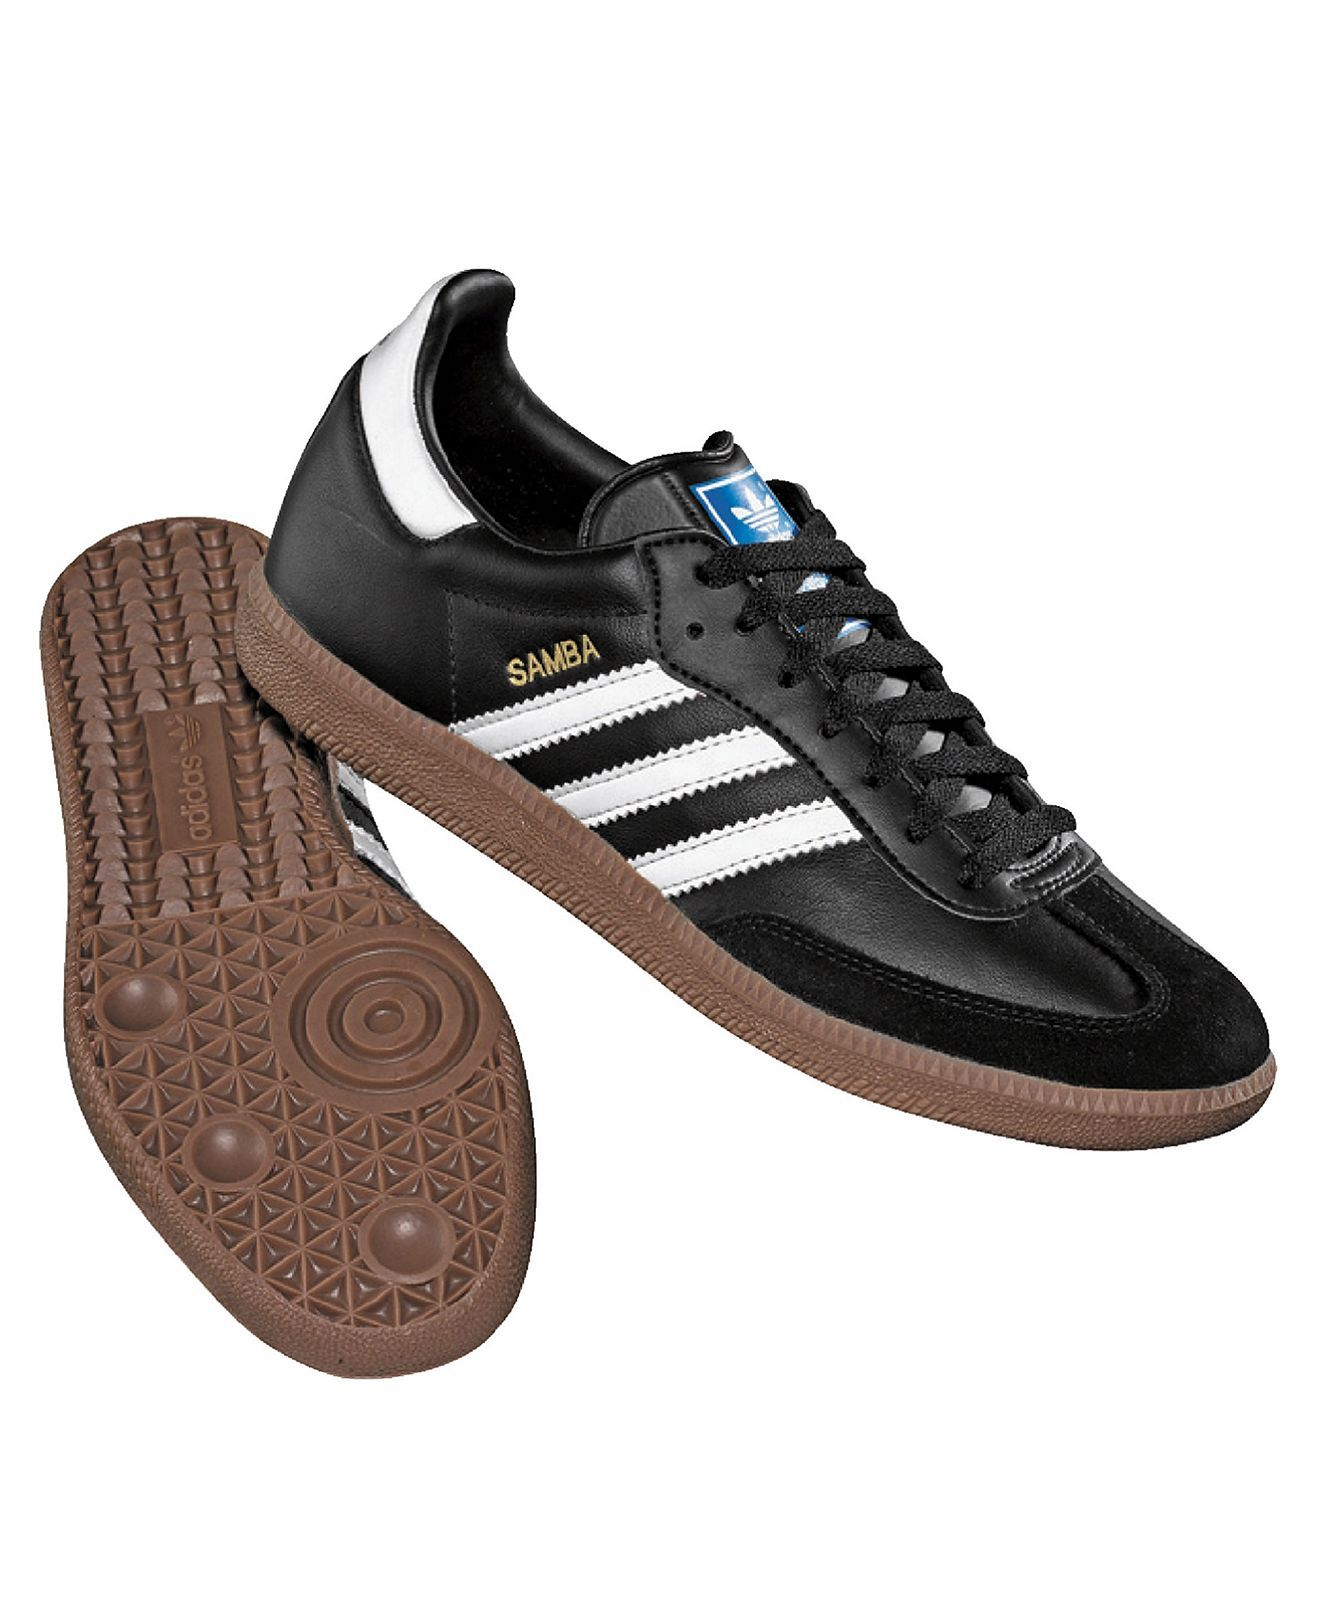 adidas Originals Shoes, Leather Samba Sneakers